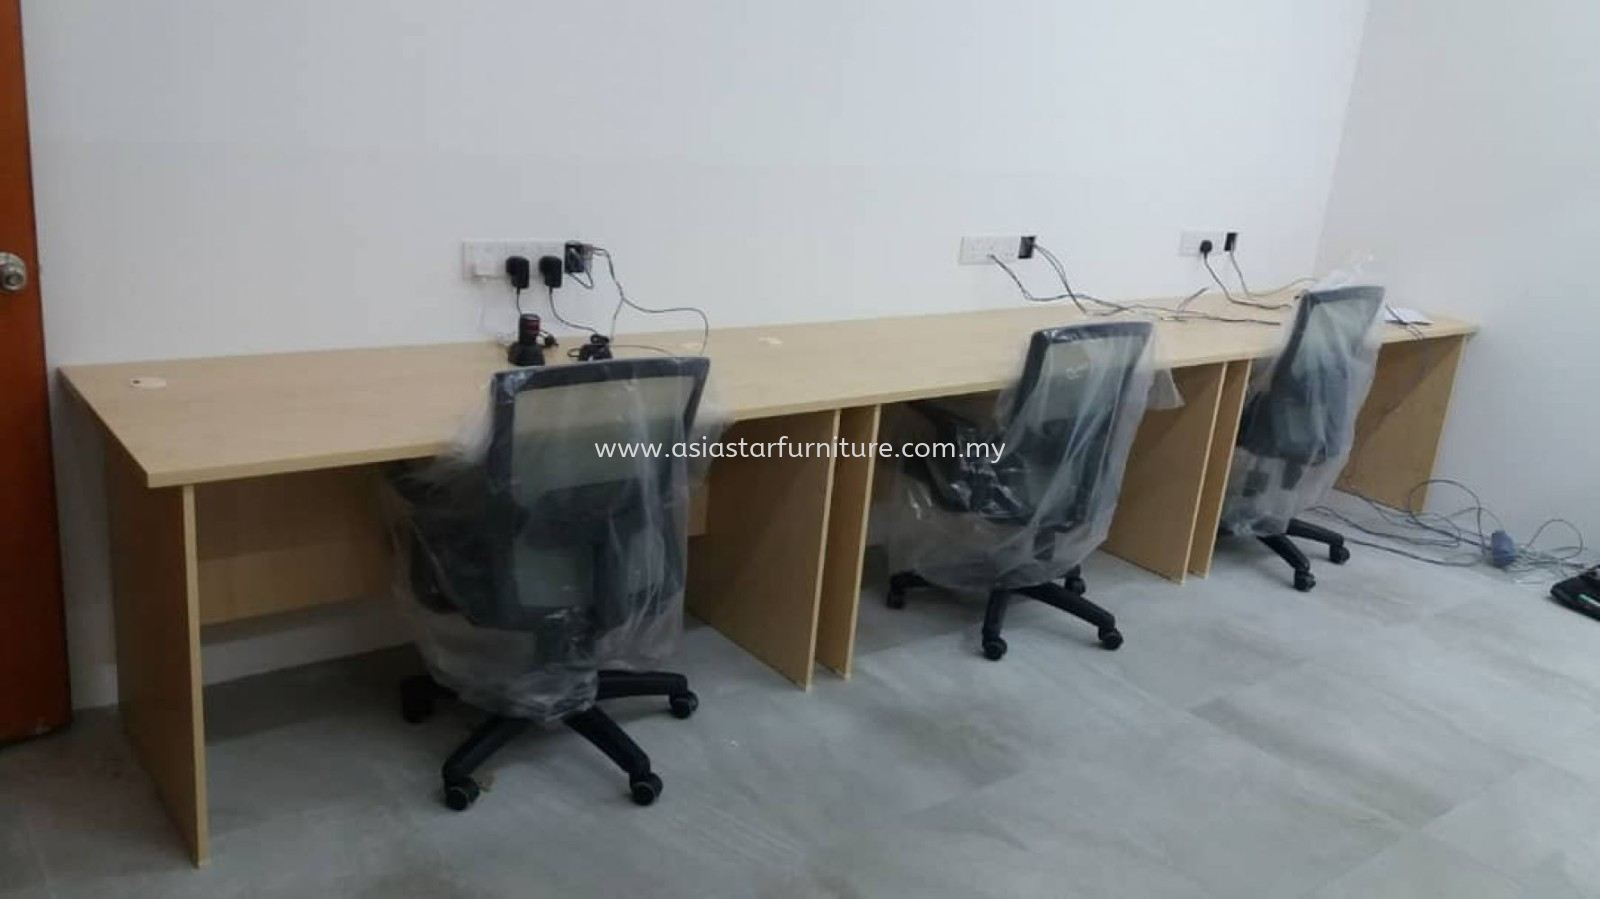 DELIVERY & INSTALLATION WRITING TABLE EXT 157 & LOW CHAIR BUXTON OFFICE FURNITURE SS2, PETALING JAYA